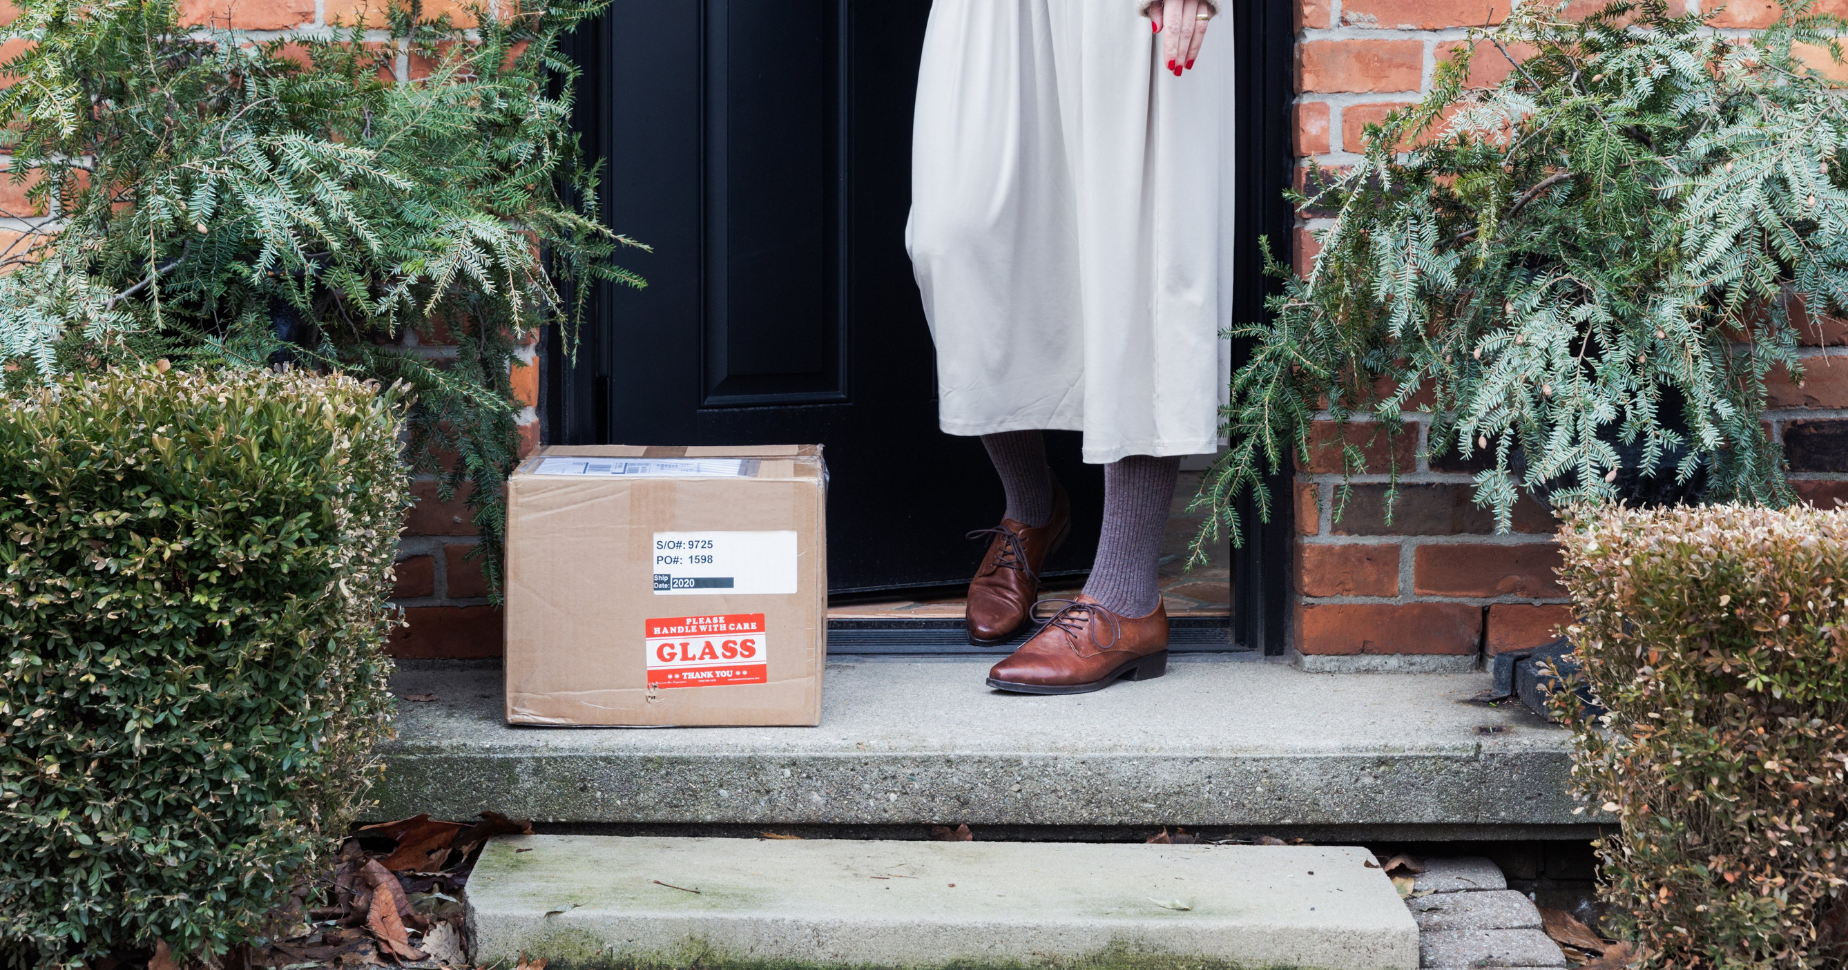 Photograph of a woman picking a package up from her doorstep